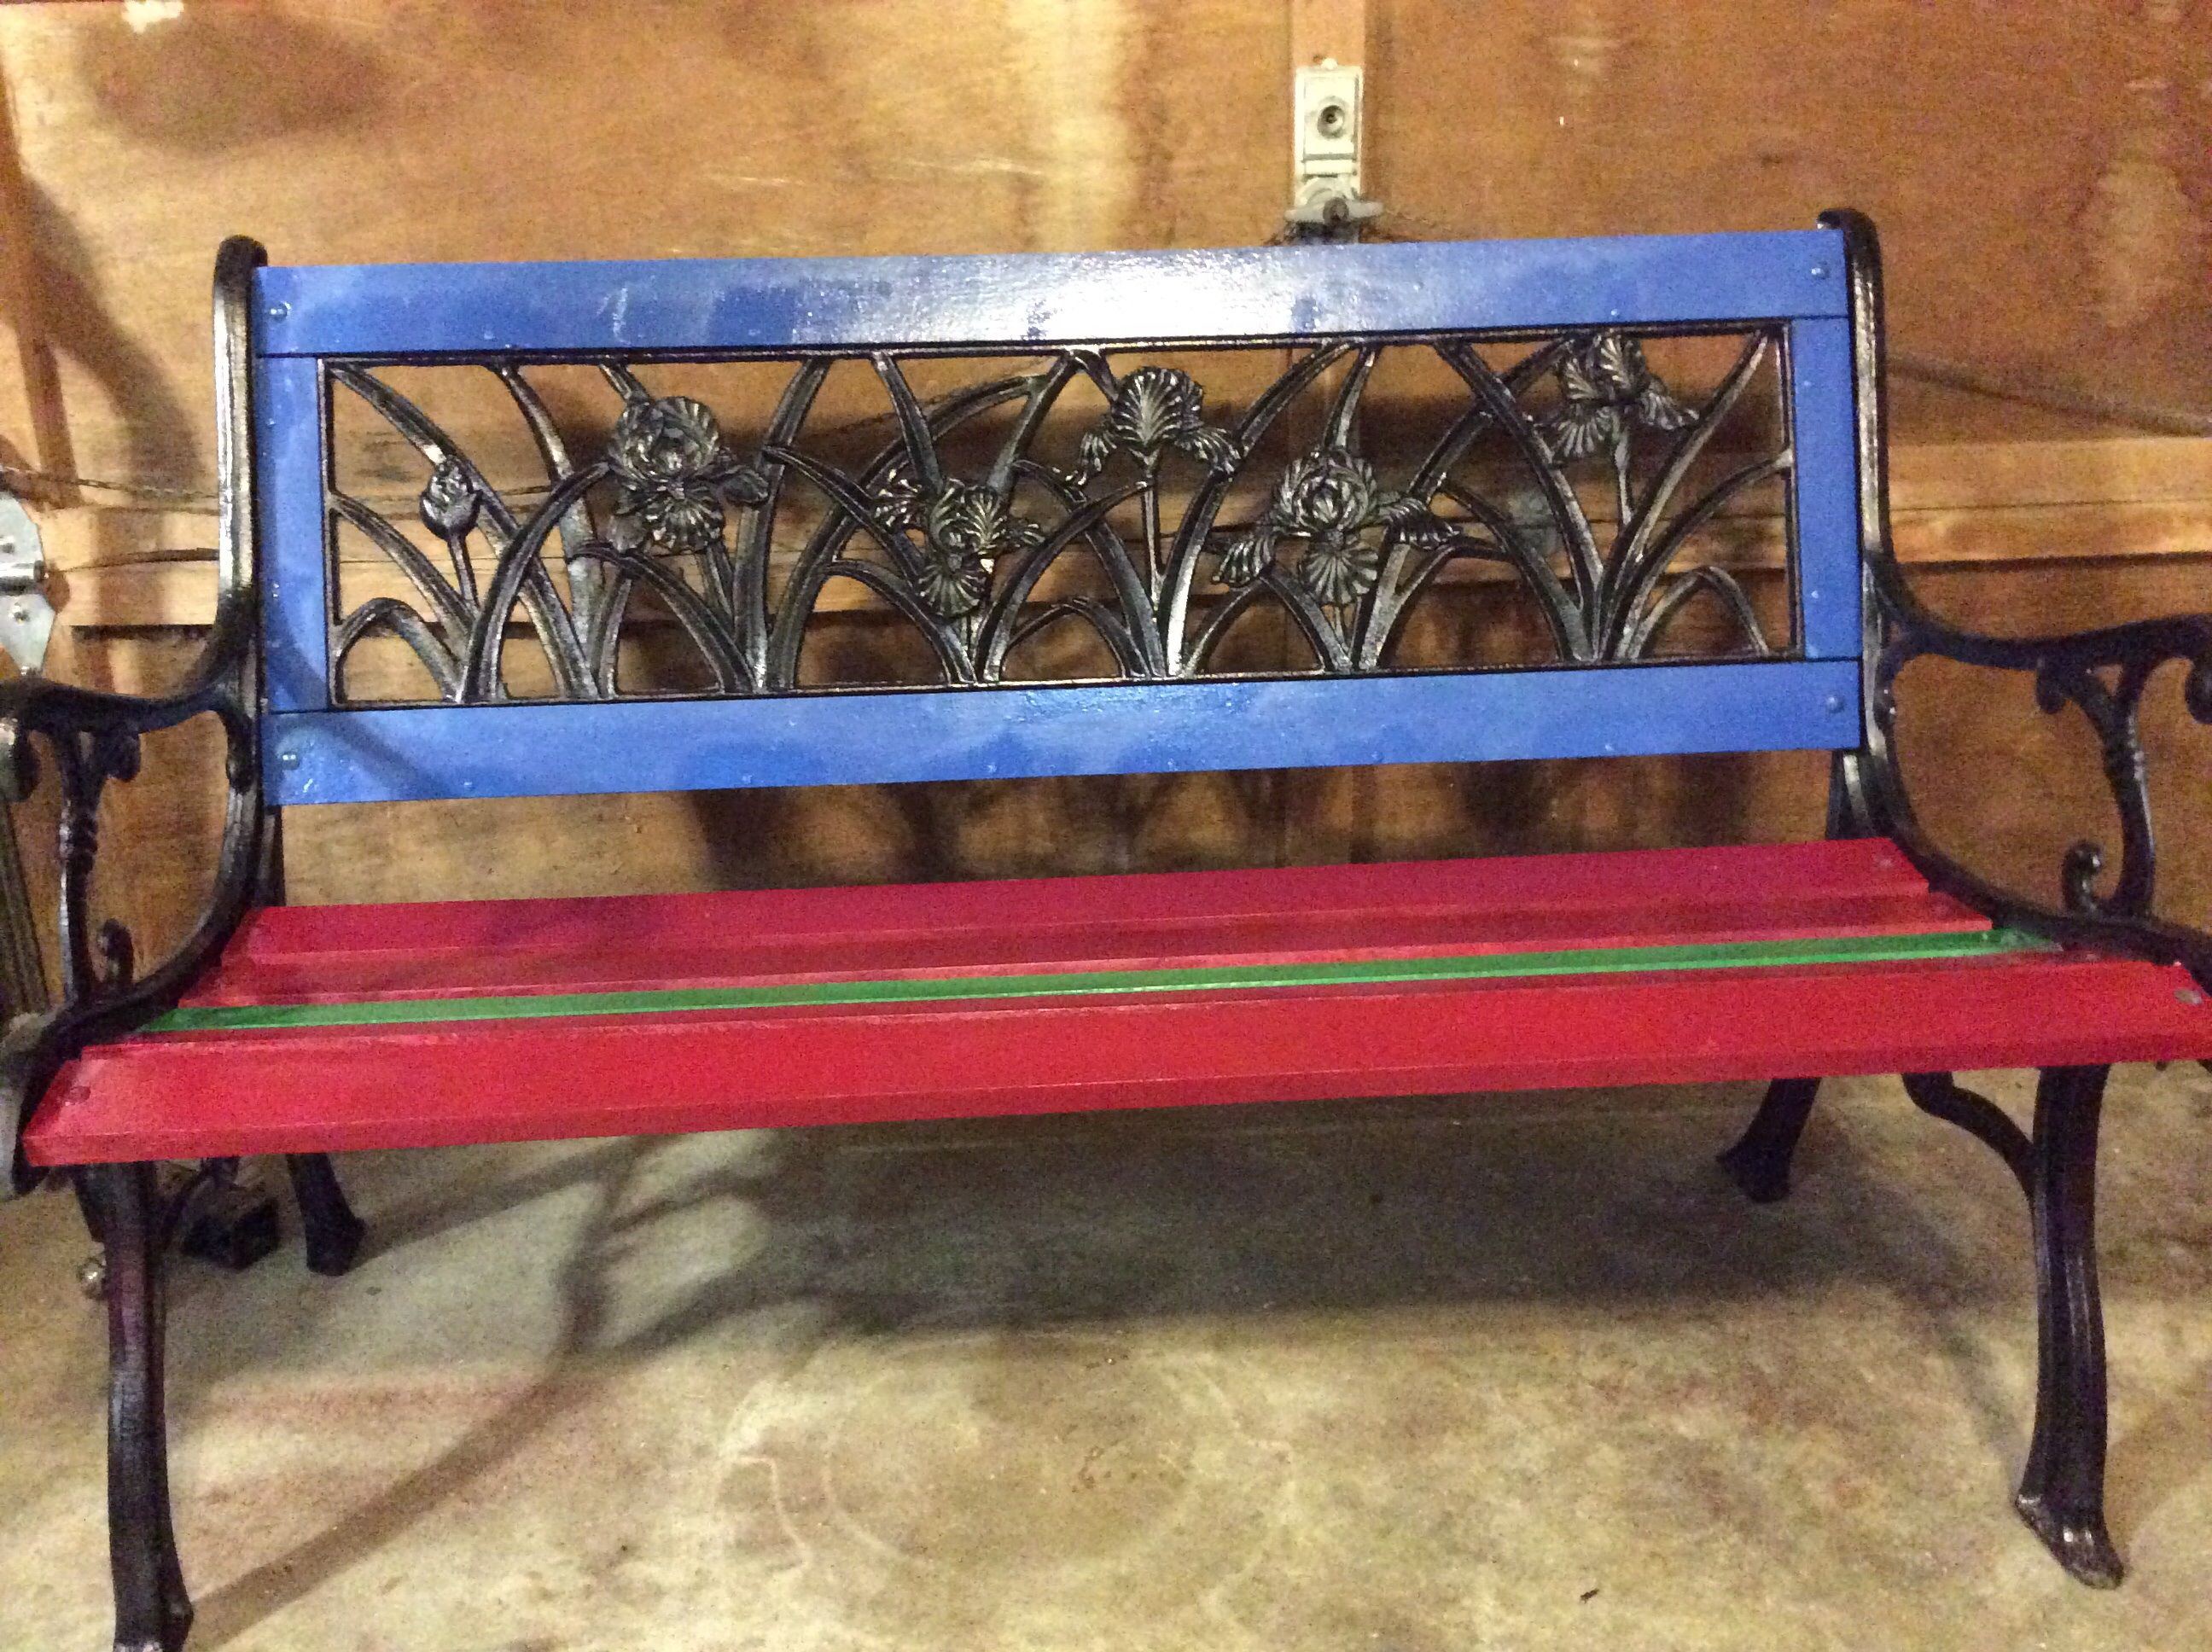 This Is The Bench I Made From An Old Metal